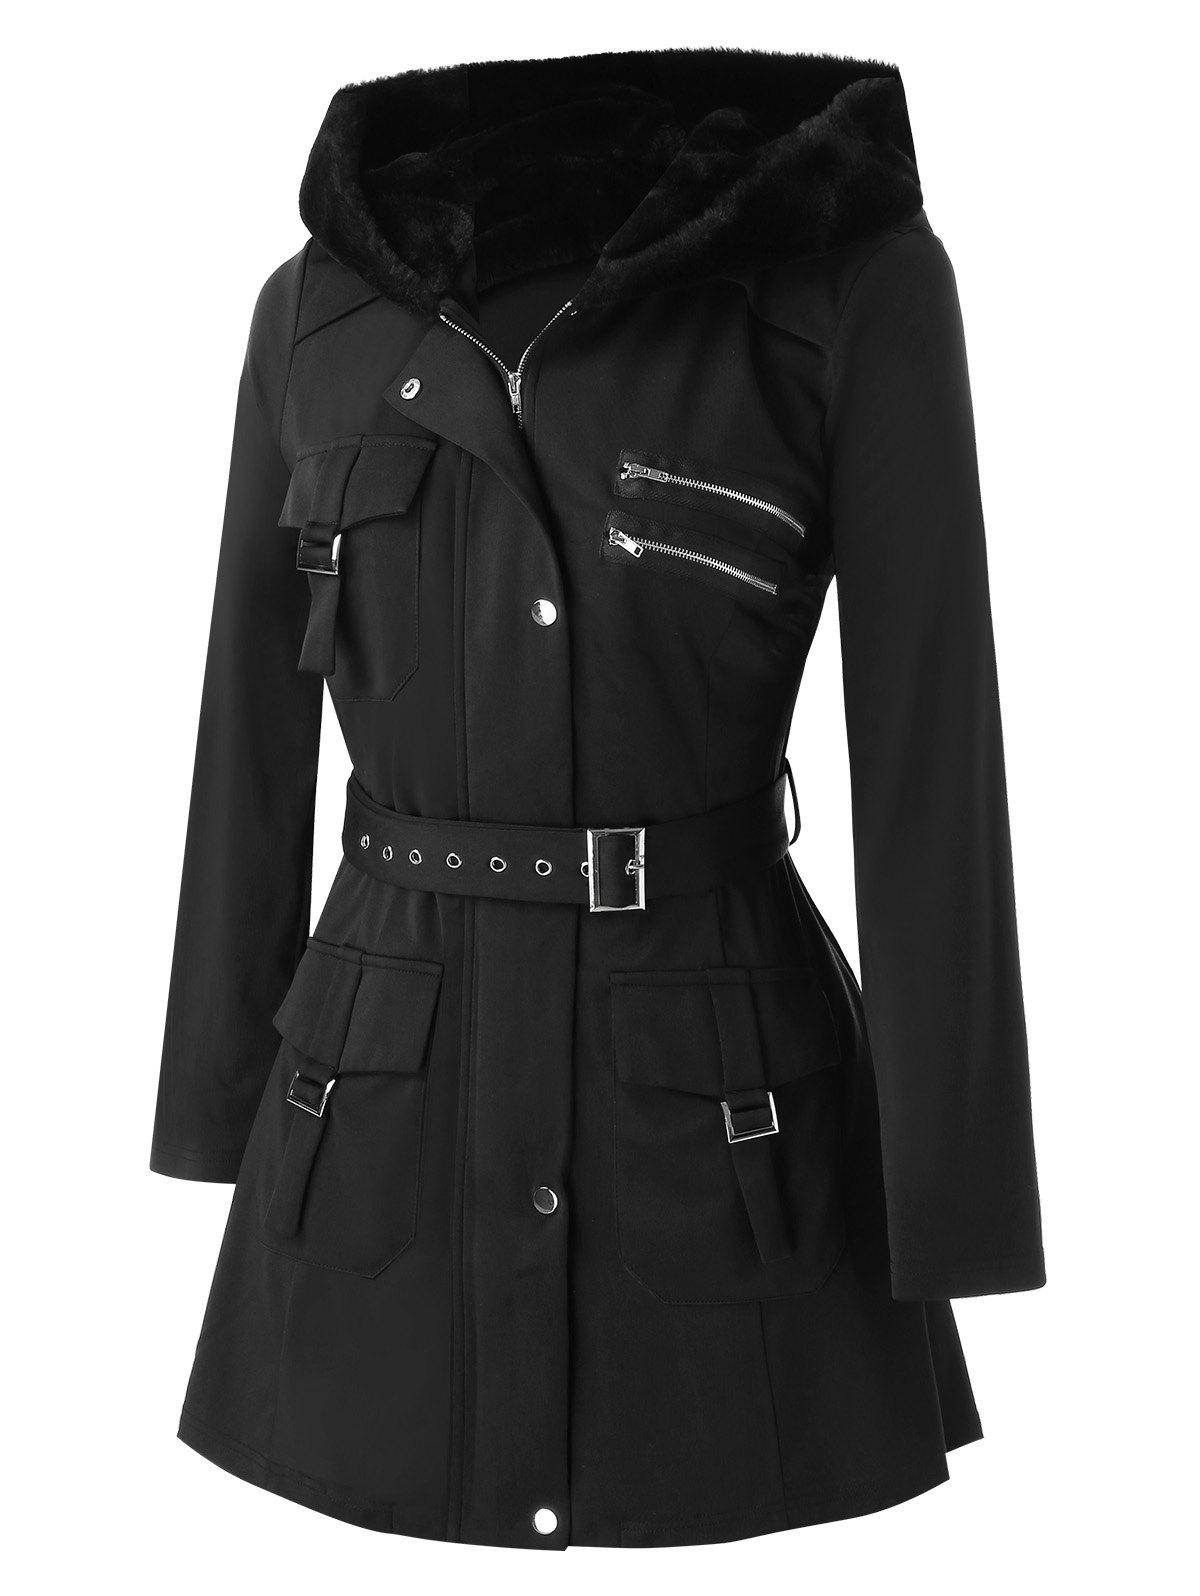 Plus Size Pockets Buckles Zippered Coat - BLACK 4X